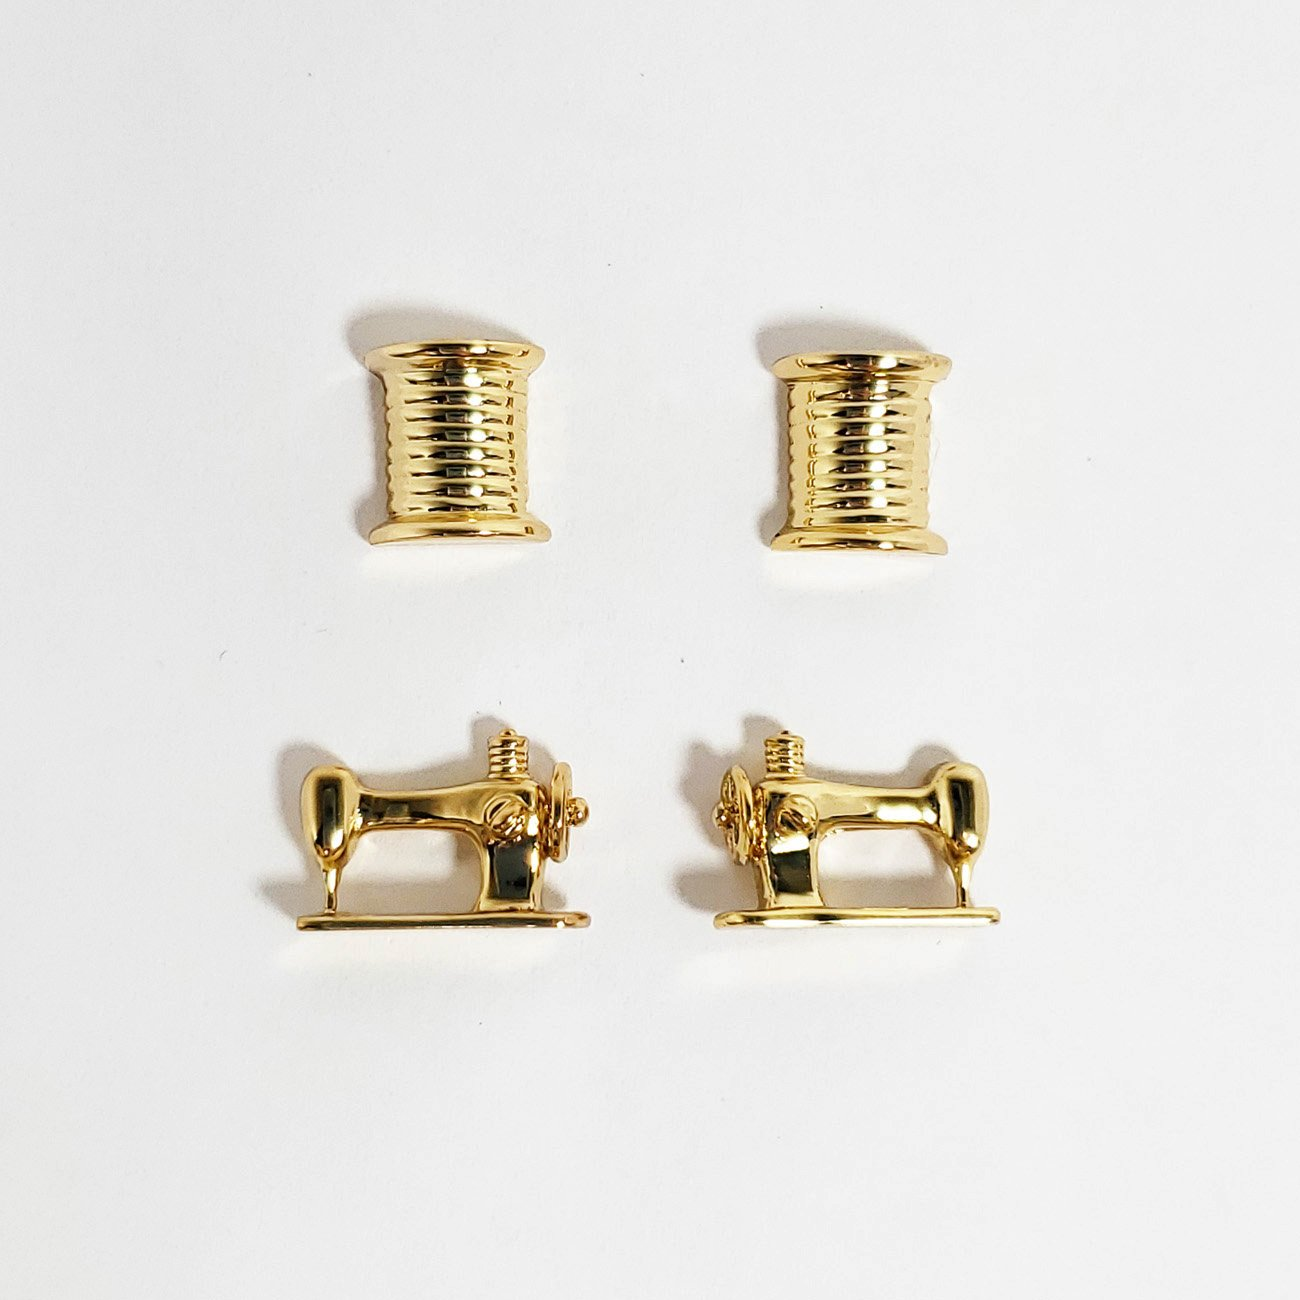 Thread and Machine Post Earring Set of 2 Gold